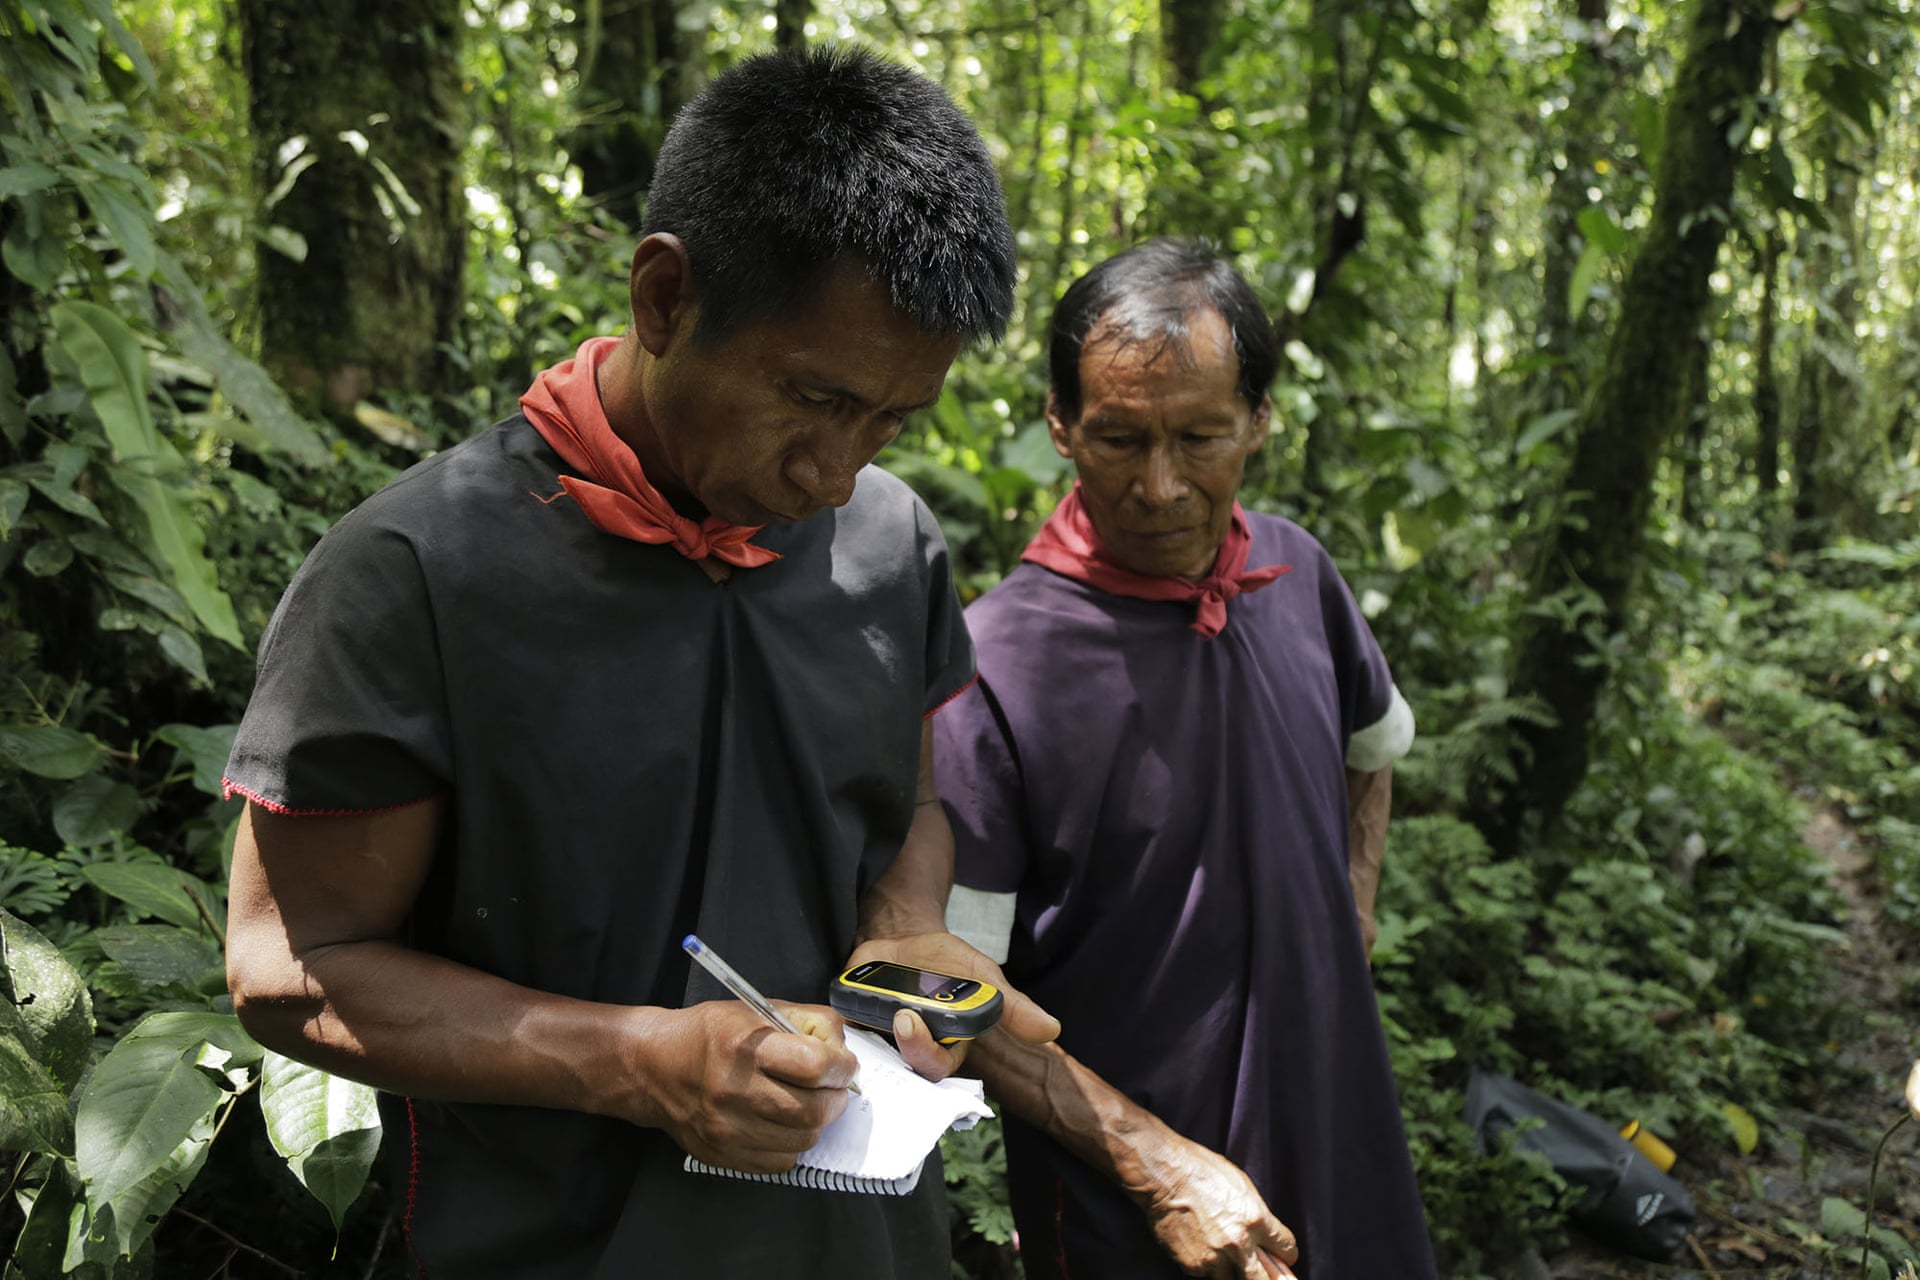 Members of Sinangoe's guardia indigena have been using GPS to monitor miners and others invading their land. Photograph: Jeronimo Zuniga/Amazon Frontlines